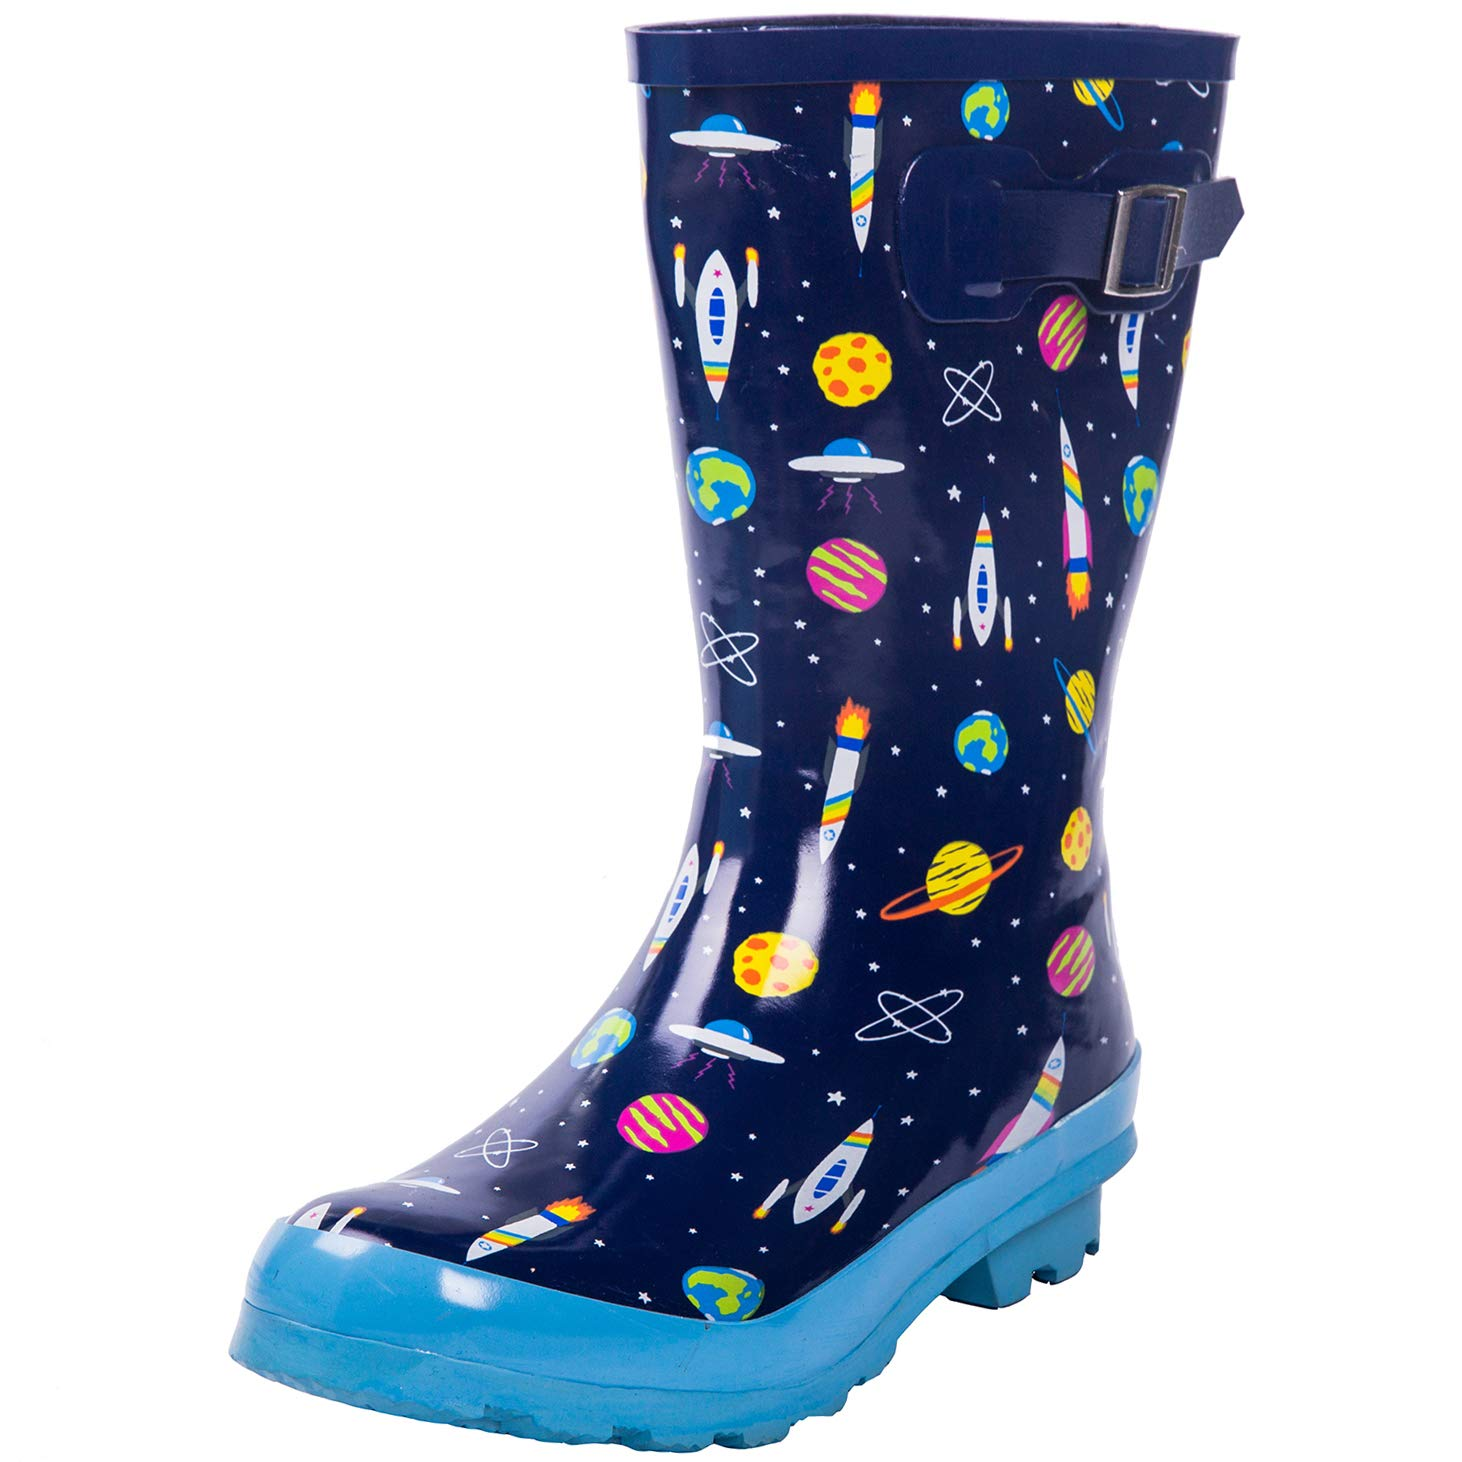 AMAWEI Kids Rain Boots Boys Girls Toddler/Little Kids/Big Kids Rubber Waterproof Garden Shoes